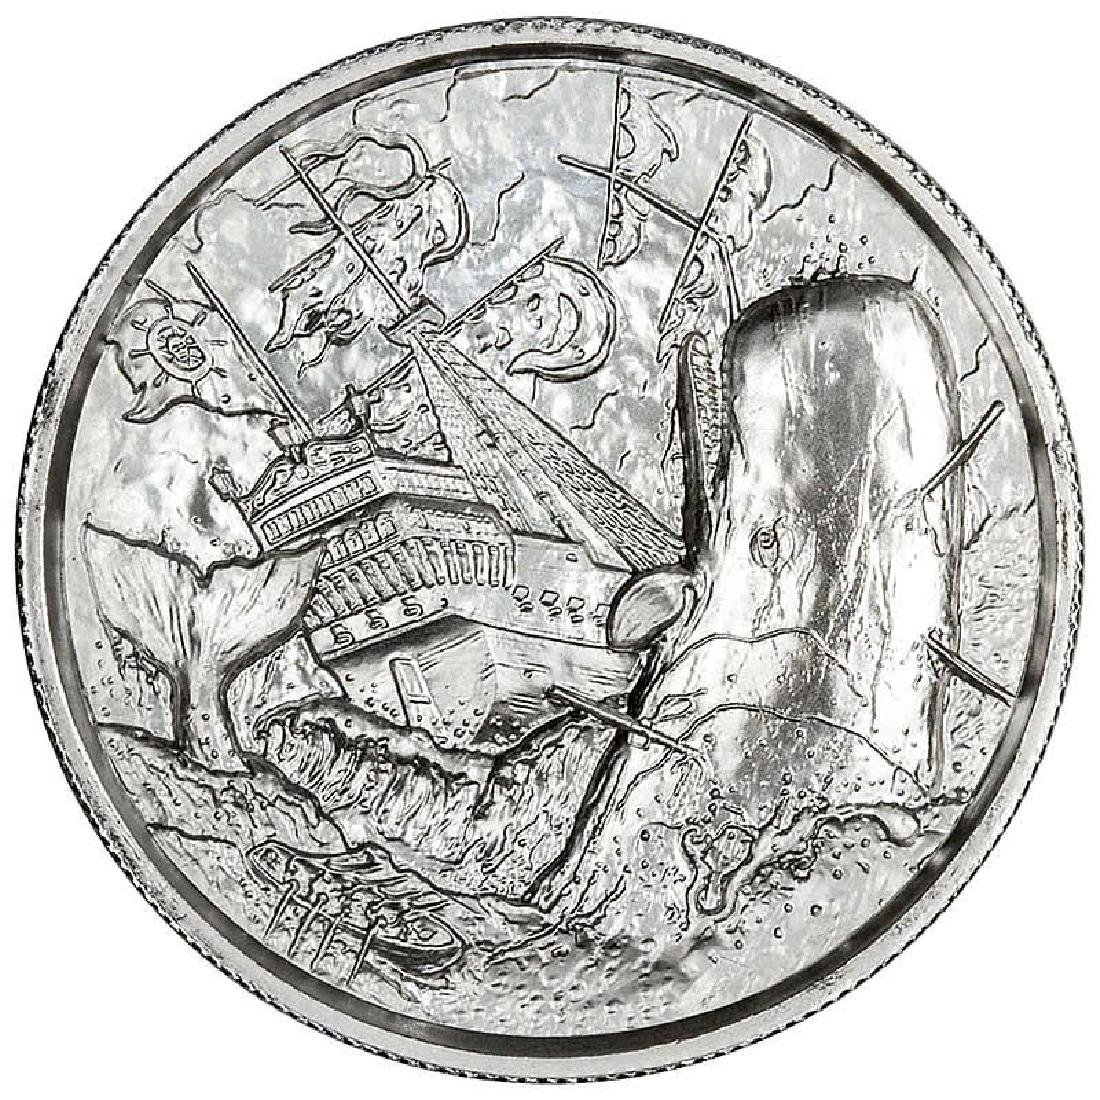 Elemetal Mint 2 oz High Relief Silver Round - The White